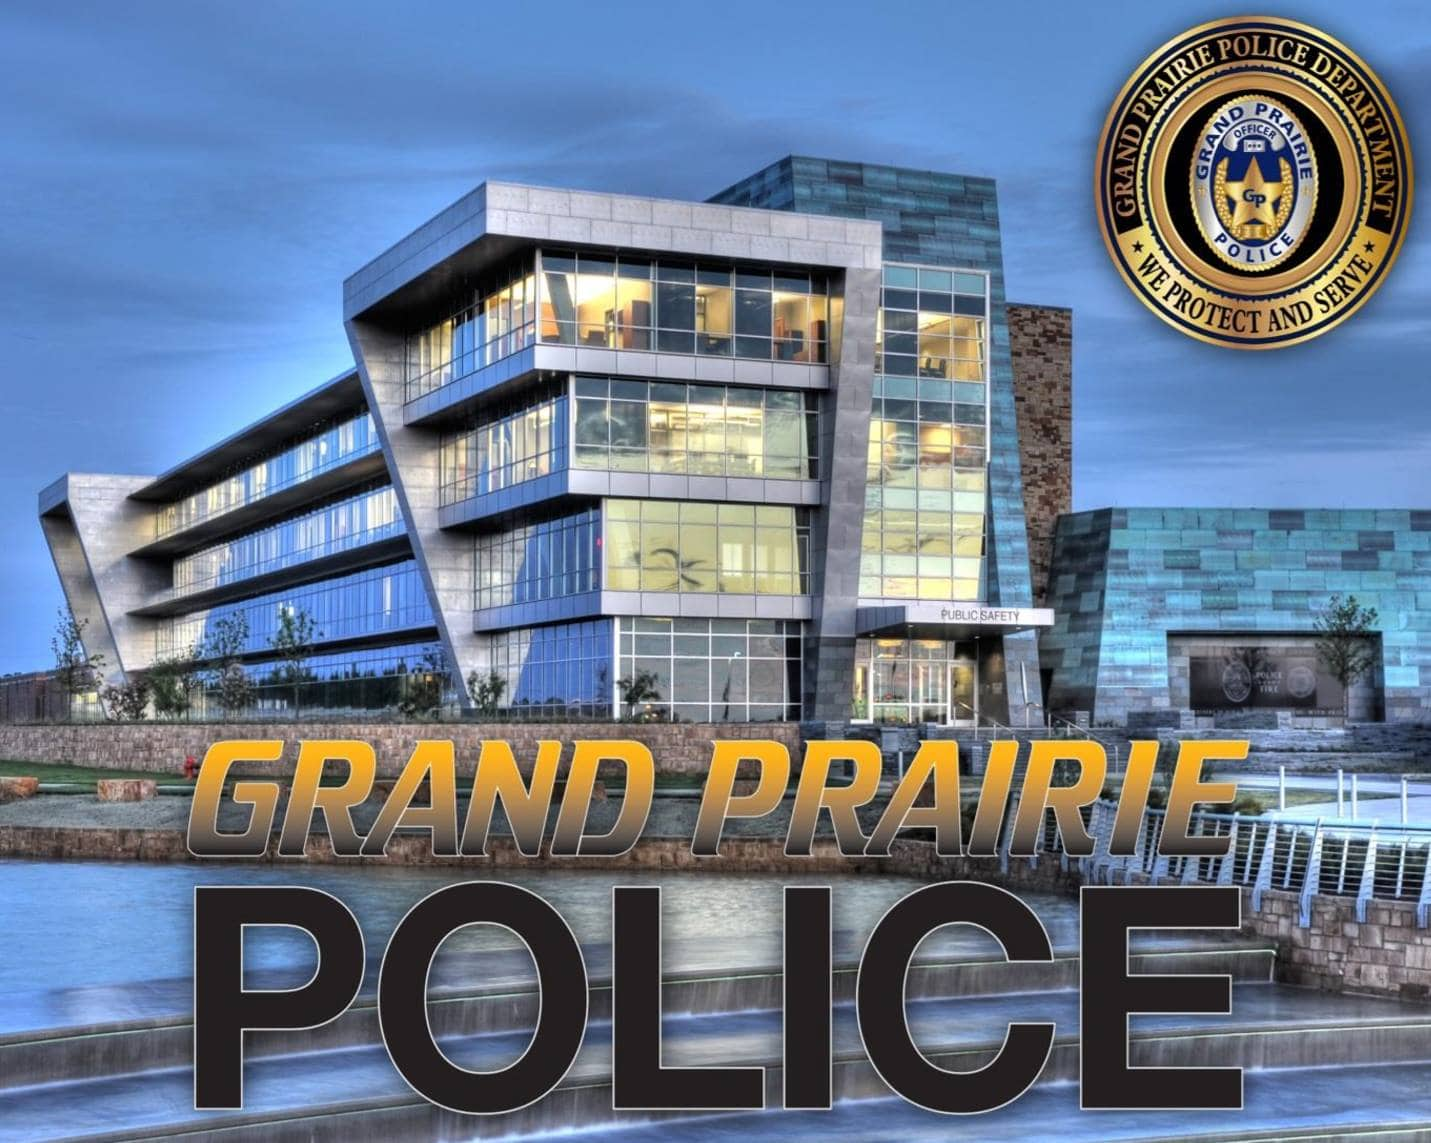 One Deceased, One Injured in Grand Prairie Shooting Last Night 6